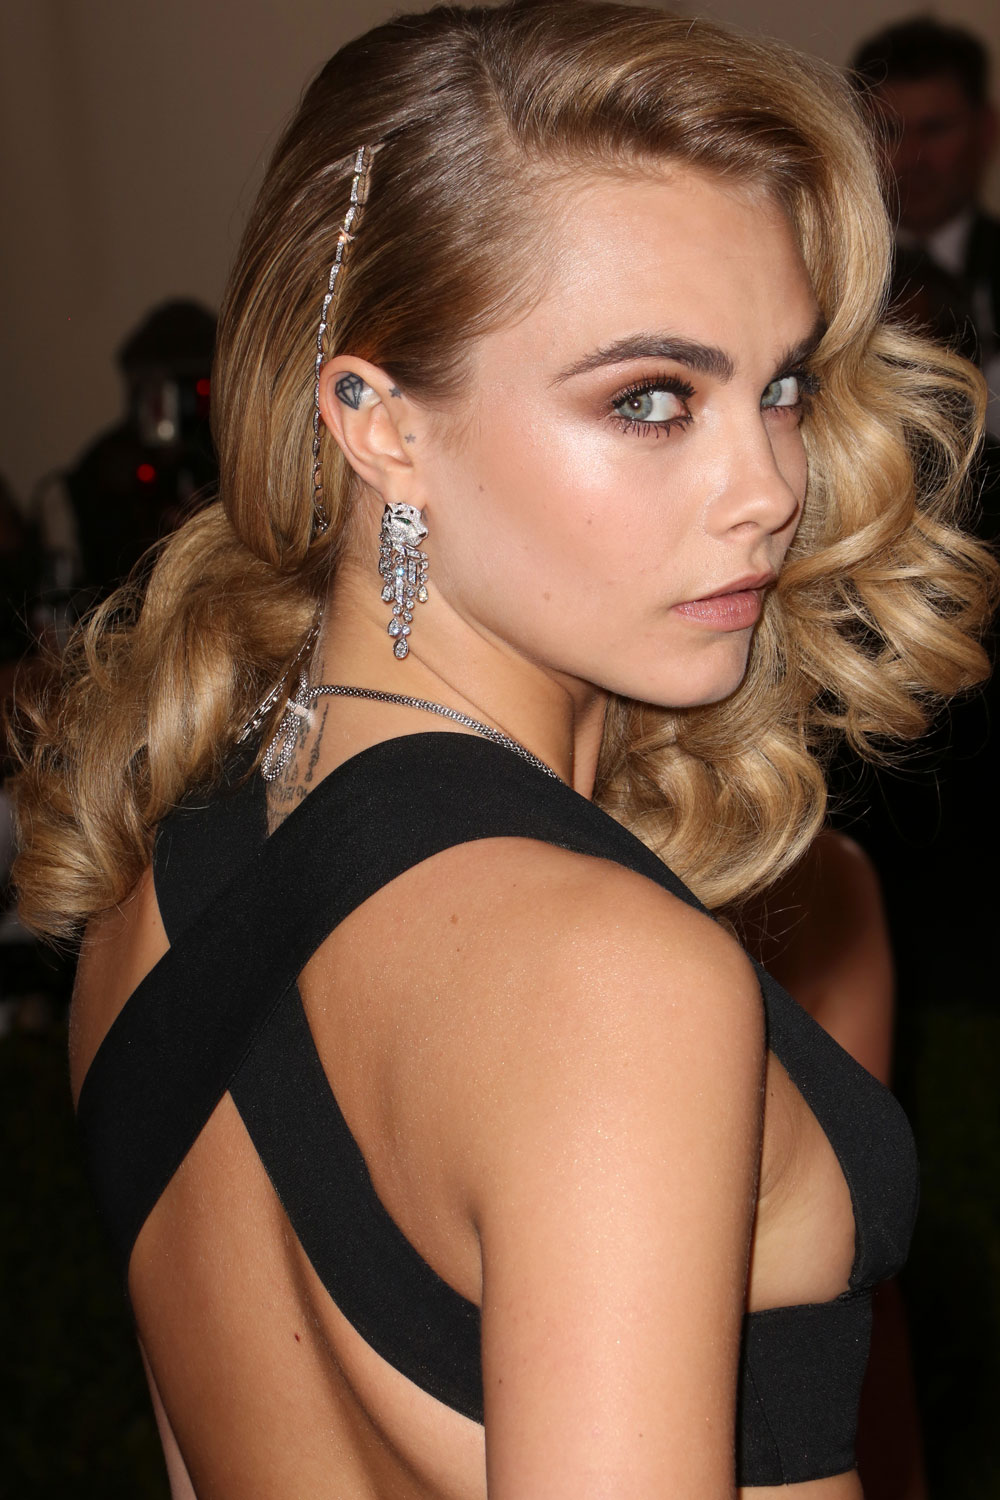 Hairstyles for round faces the best celebrity styles to inspire you urmus Gallery